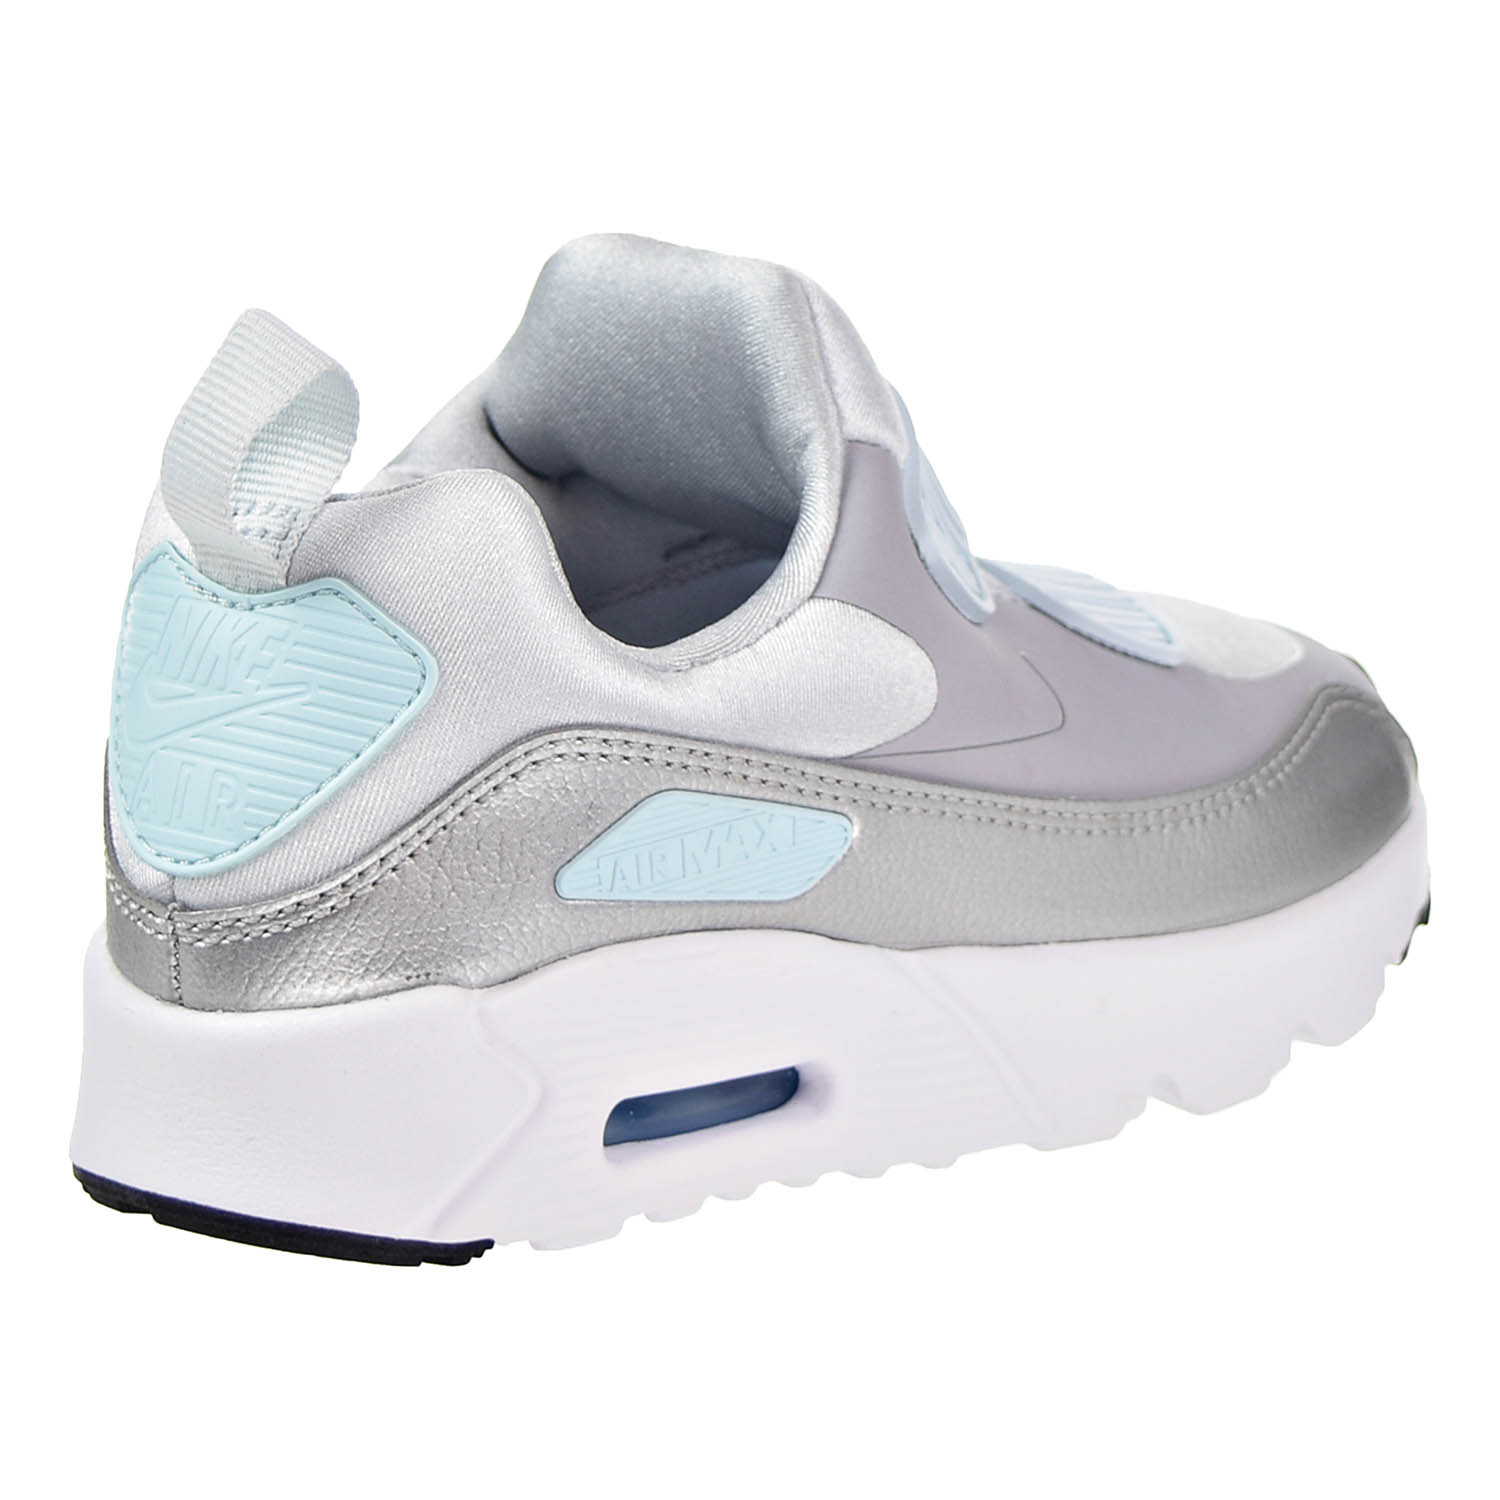 5a4913c464 Nike Air Max Tiny 90 (PS) Running Shoes Pure Platinum/Wolf Grey 881926-001